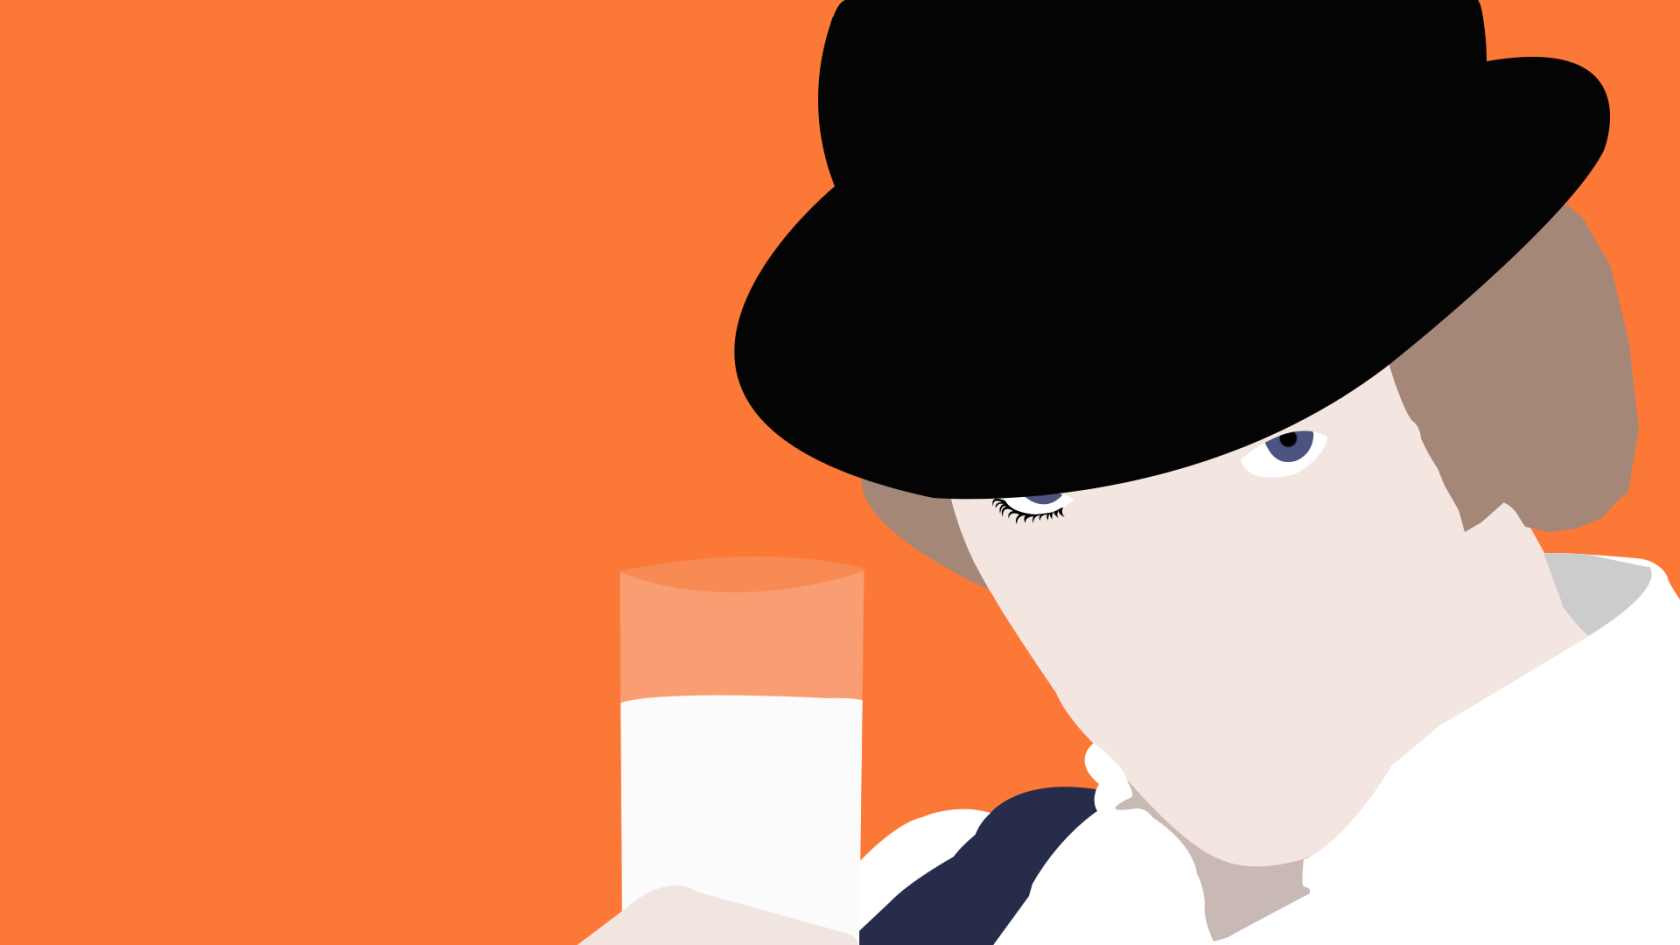 Clockwork Orange Wallpaper and Background | 1680x945 | ID ... A Clockwork Orange Wallpaper 1920x1080